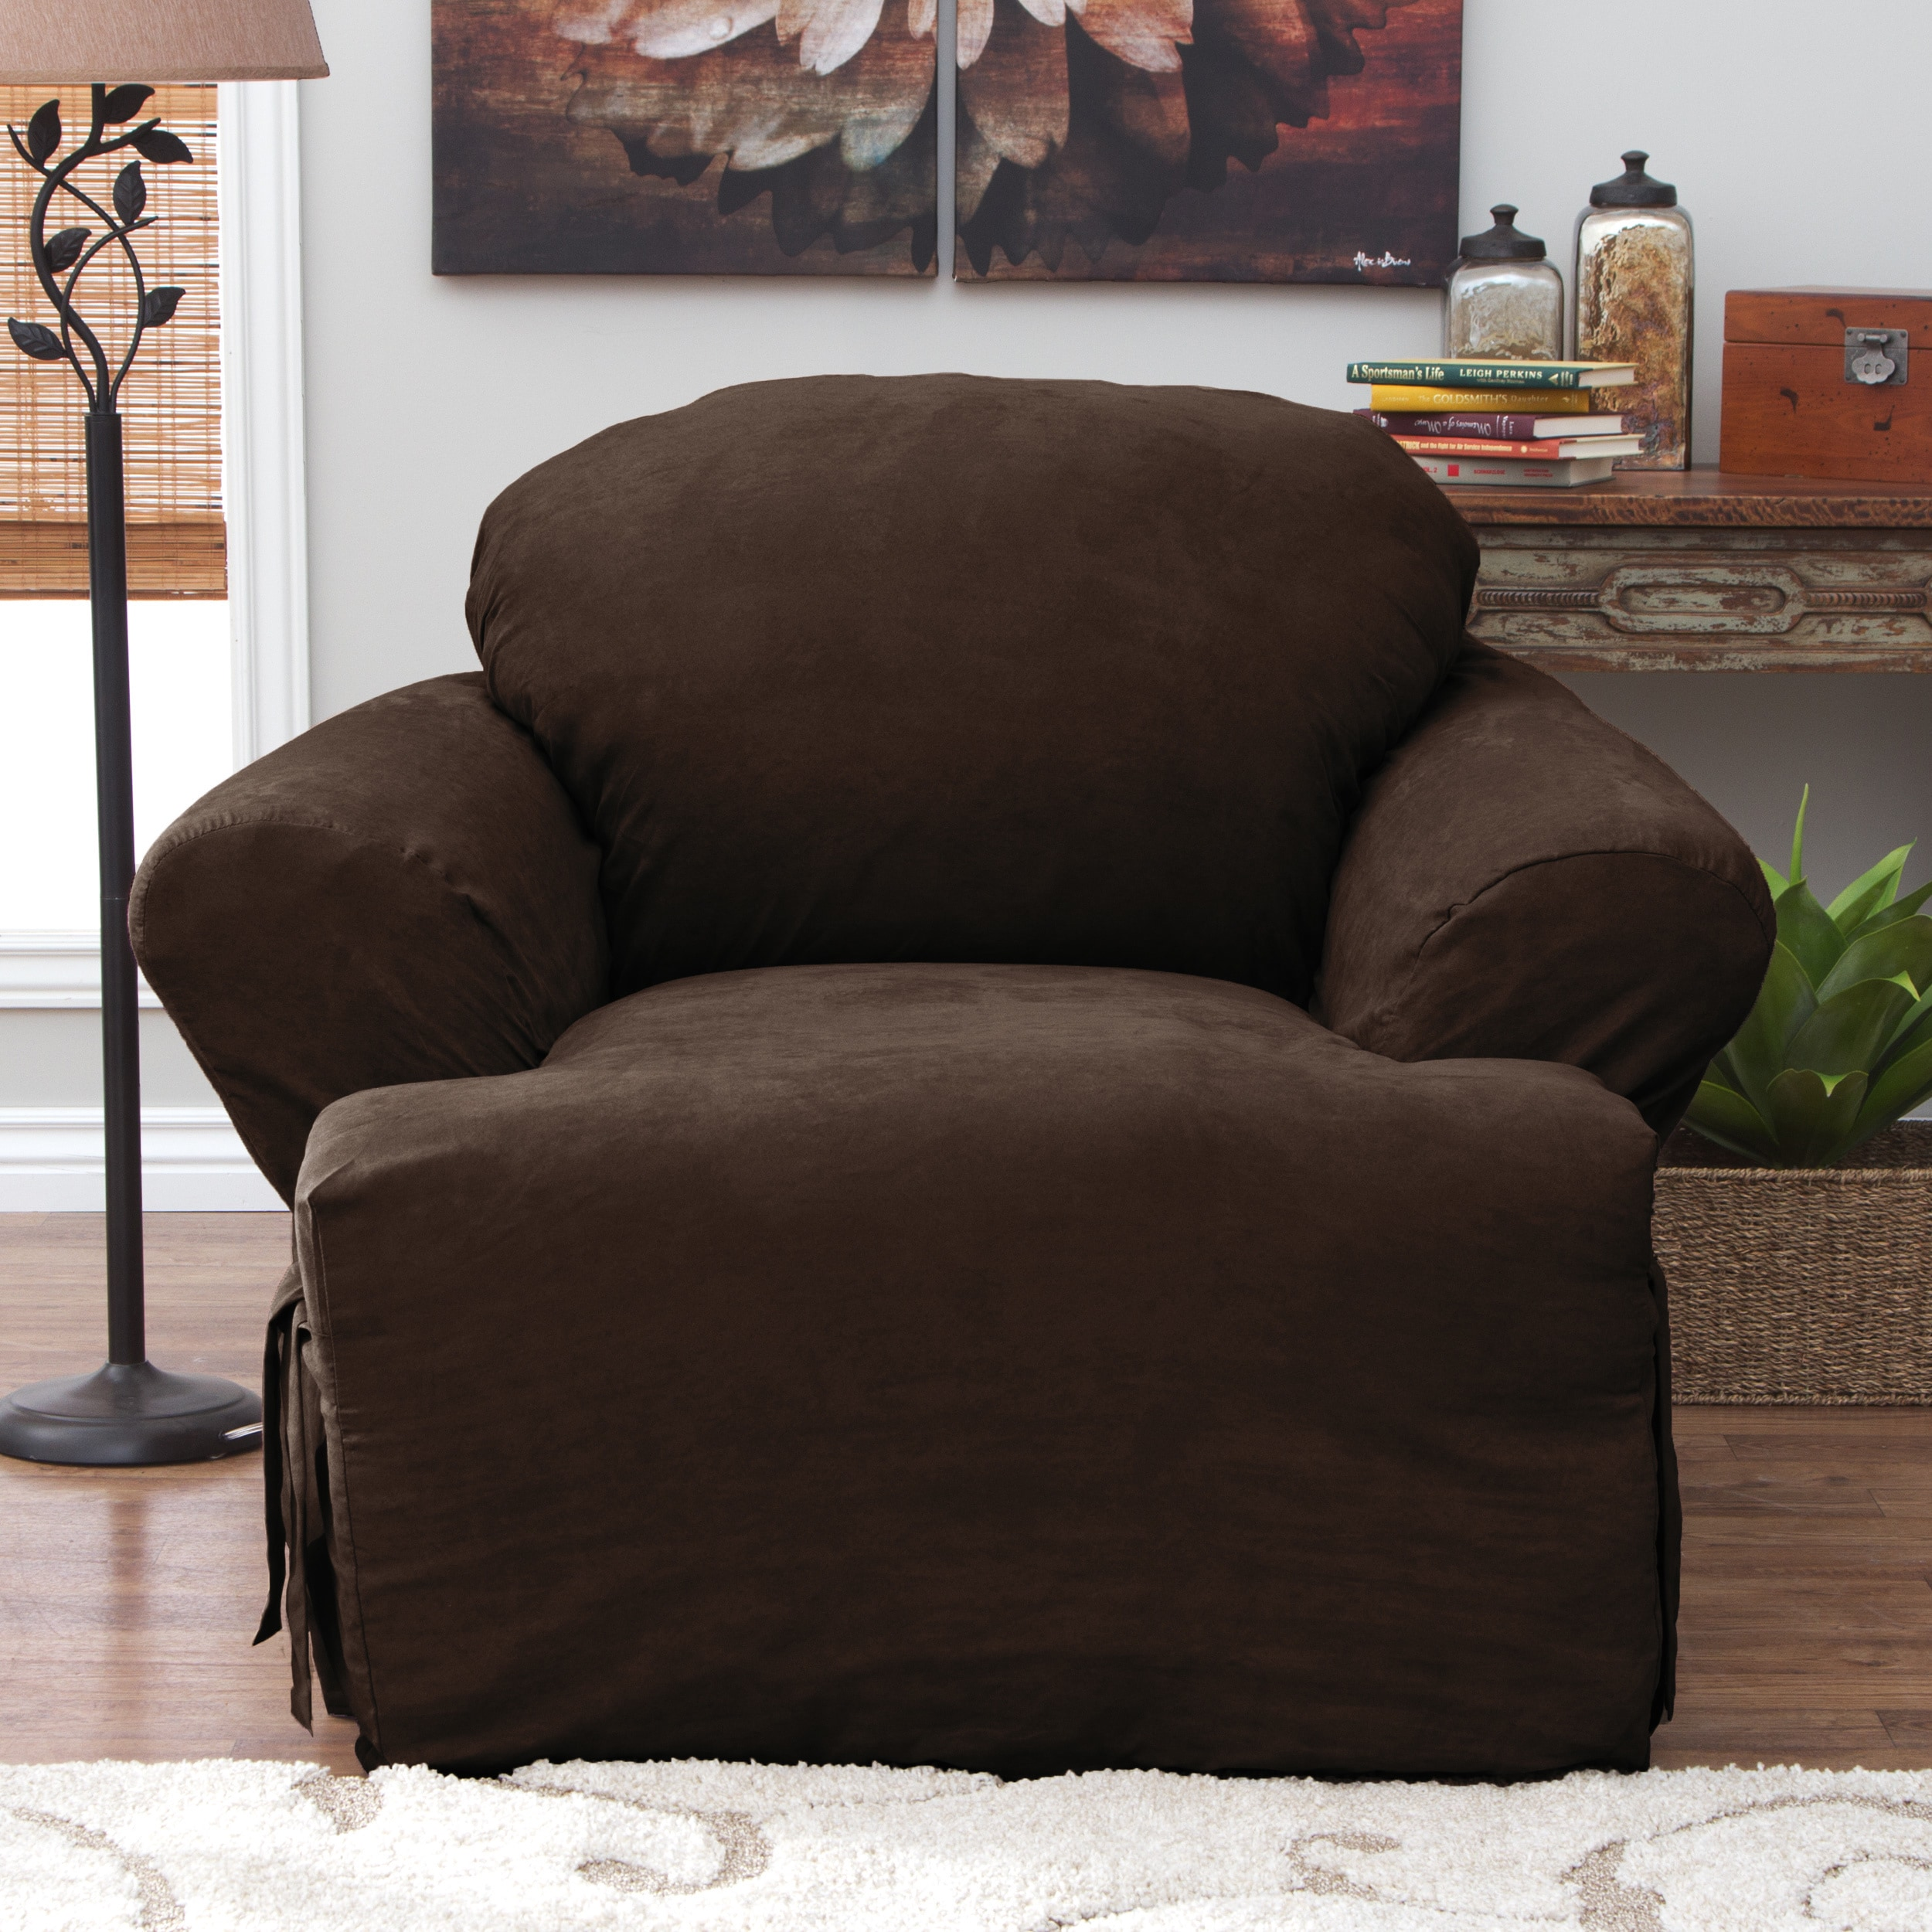 Tailor Fit Relaxed Fit Smooth Suede T-Cushion Chair Slipc...